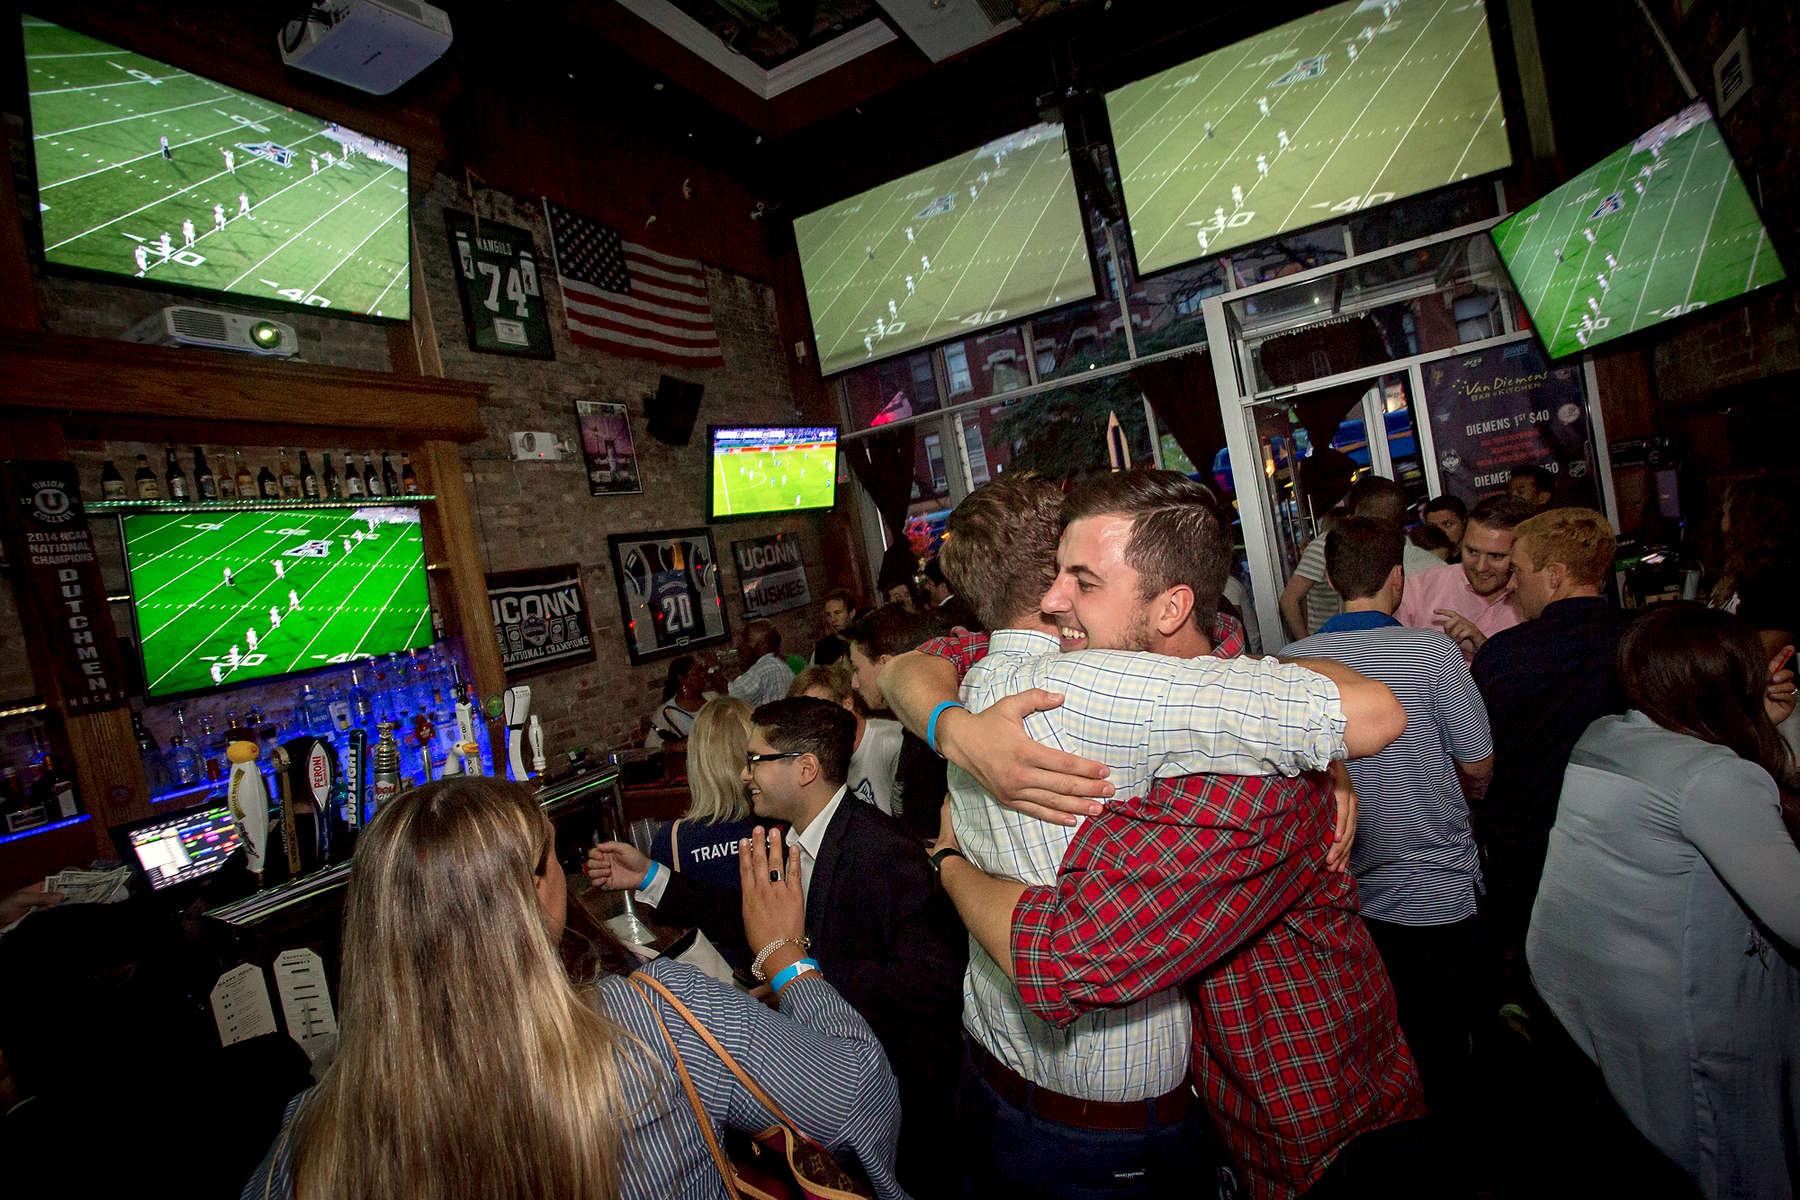 Alumni embrace during a Welcome to the Neighborhood UConn football watch party at Van Diemens bar Thursday, August 31, 2017 in New York City. (G.J. McCarthy / UConn Foundation)